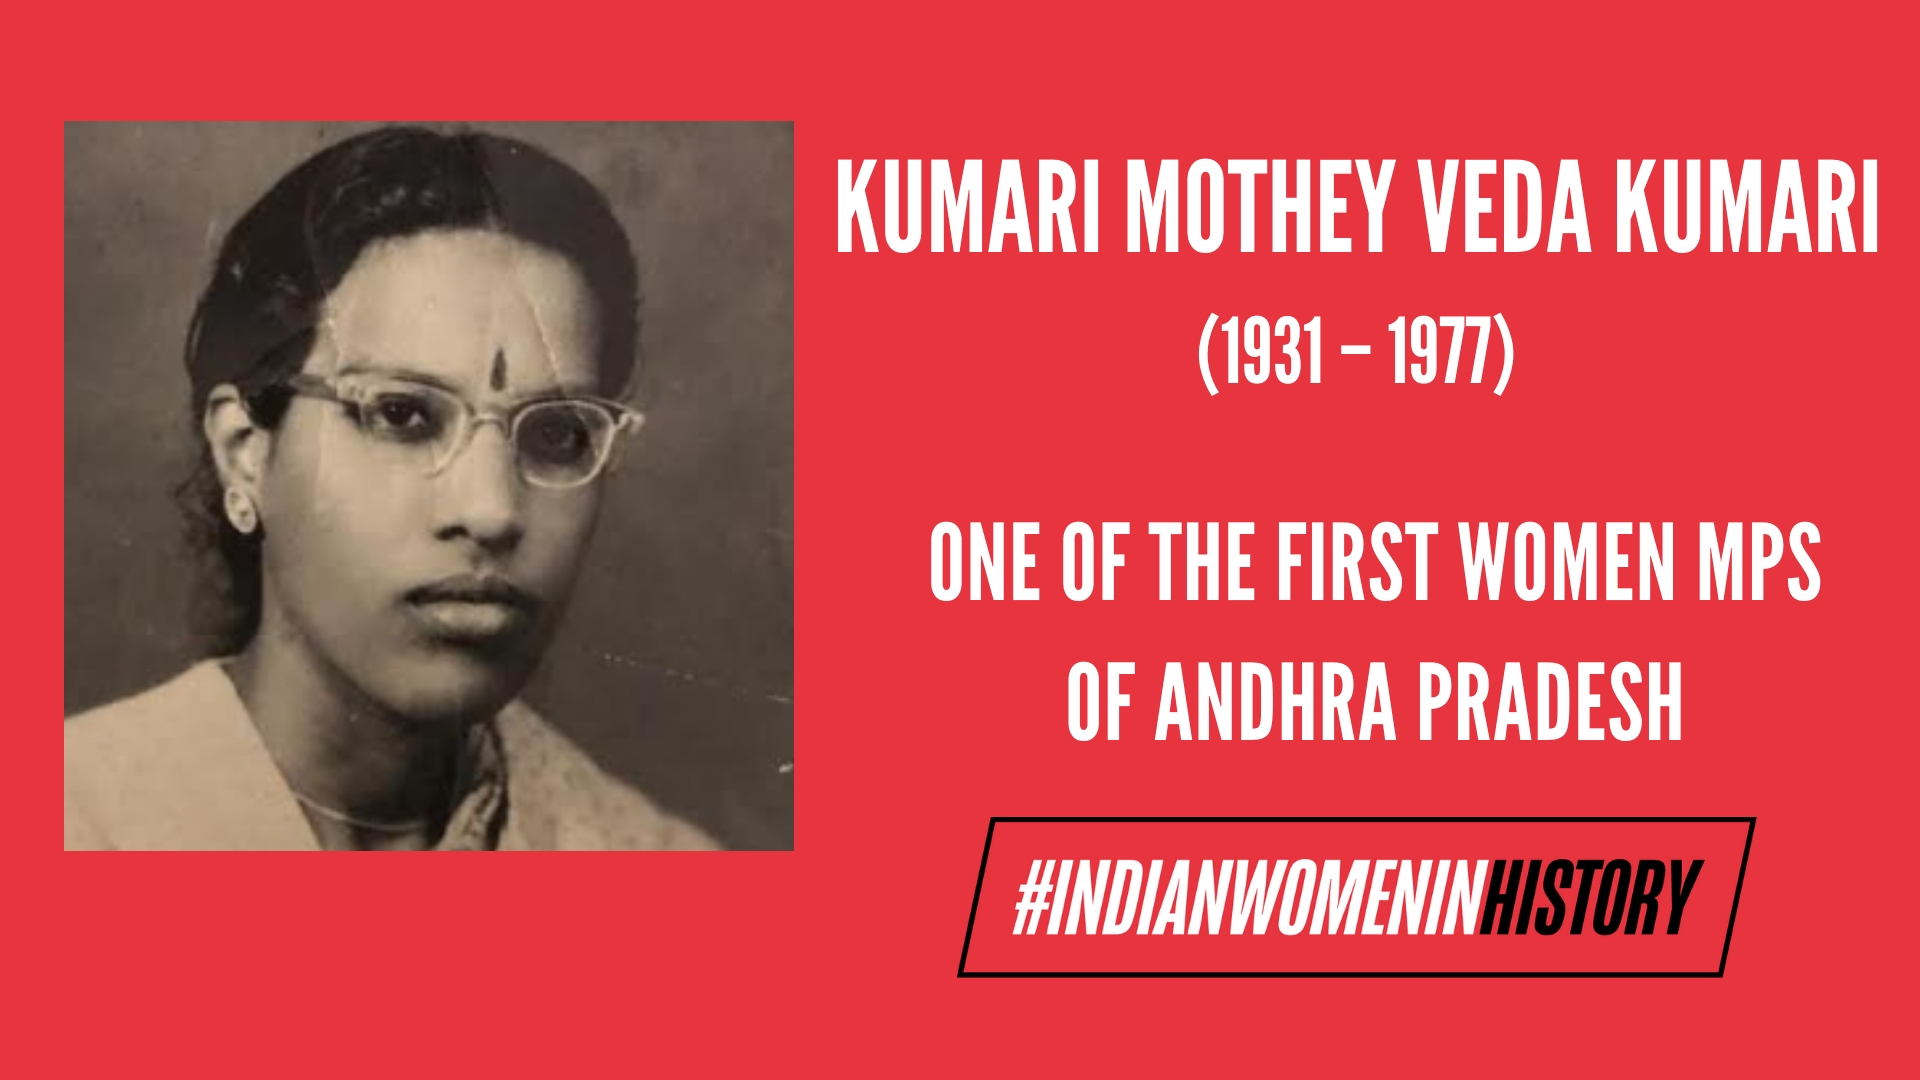 Kumari Mothey Veda Kumari: One Of The First Women MPs Of Andhra Pradesh